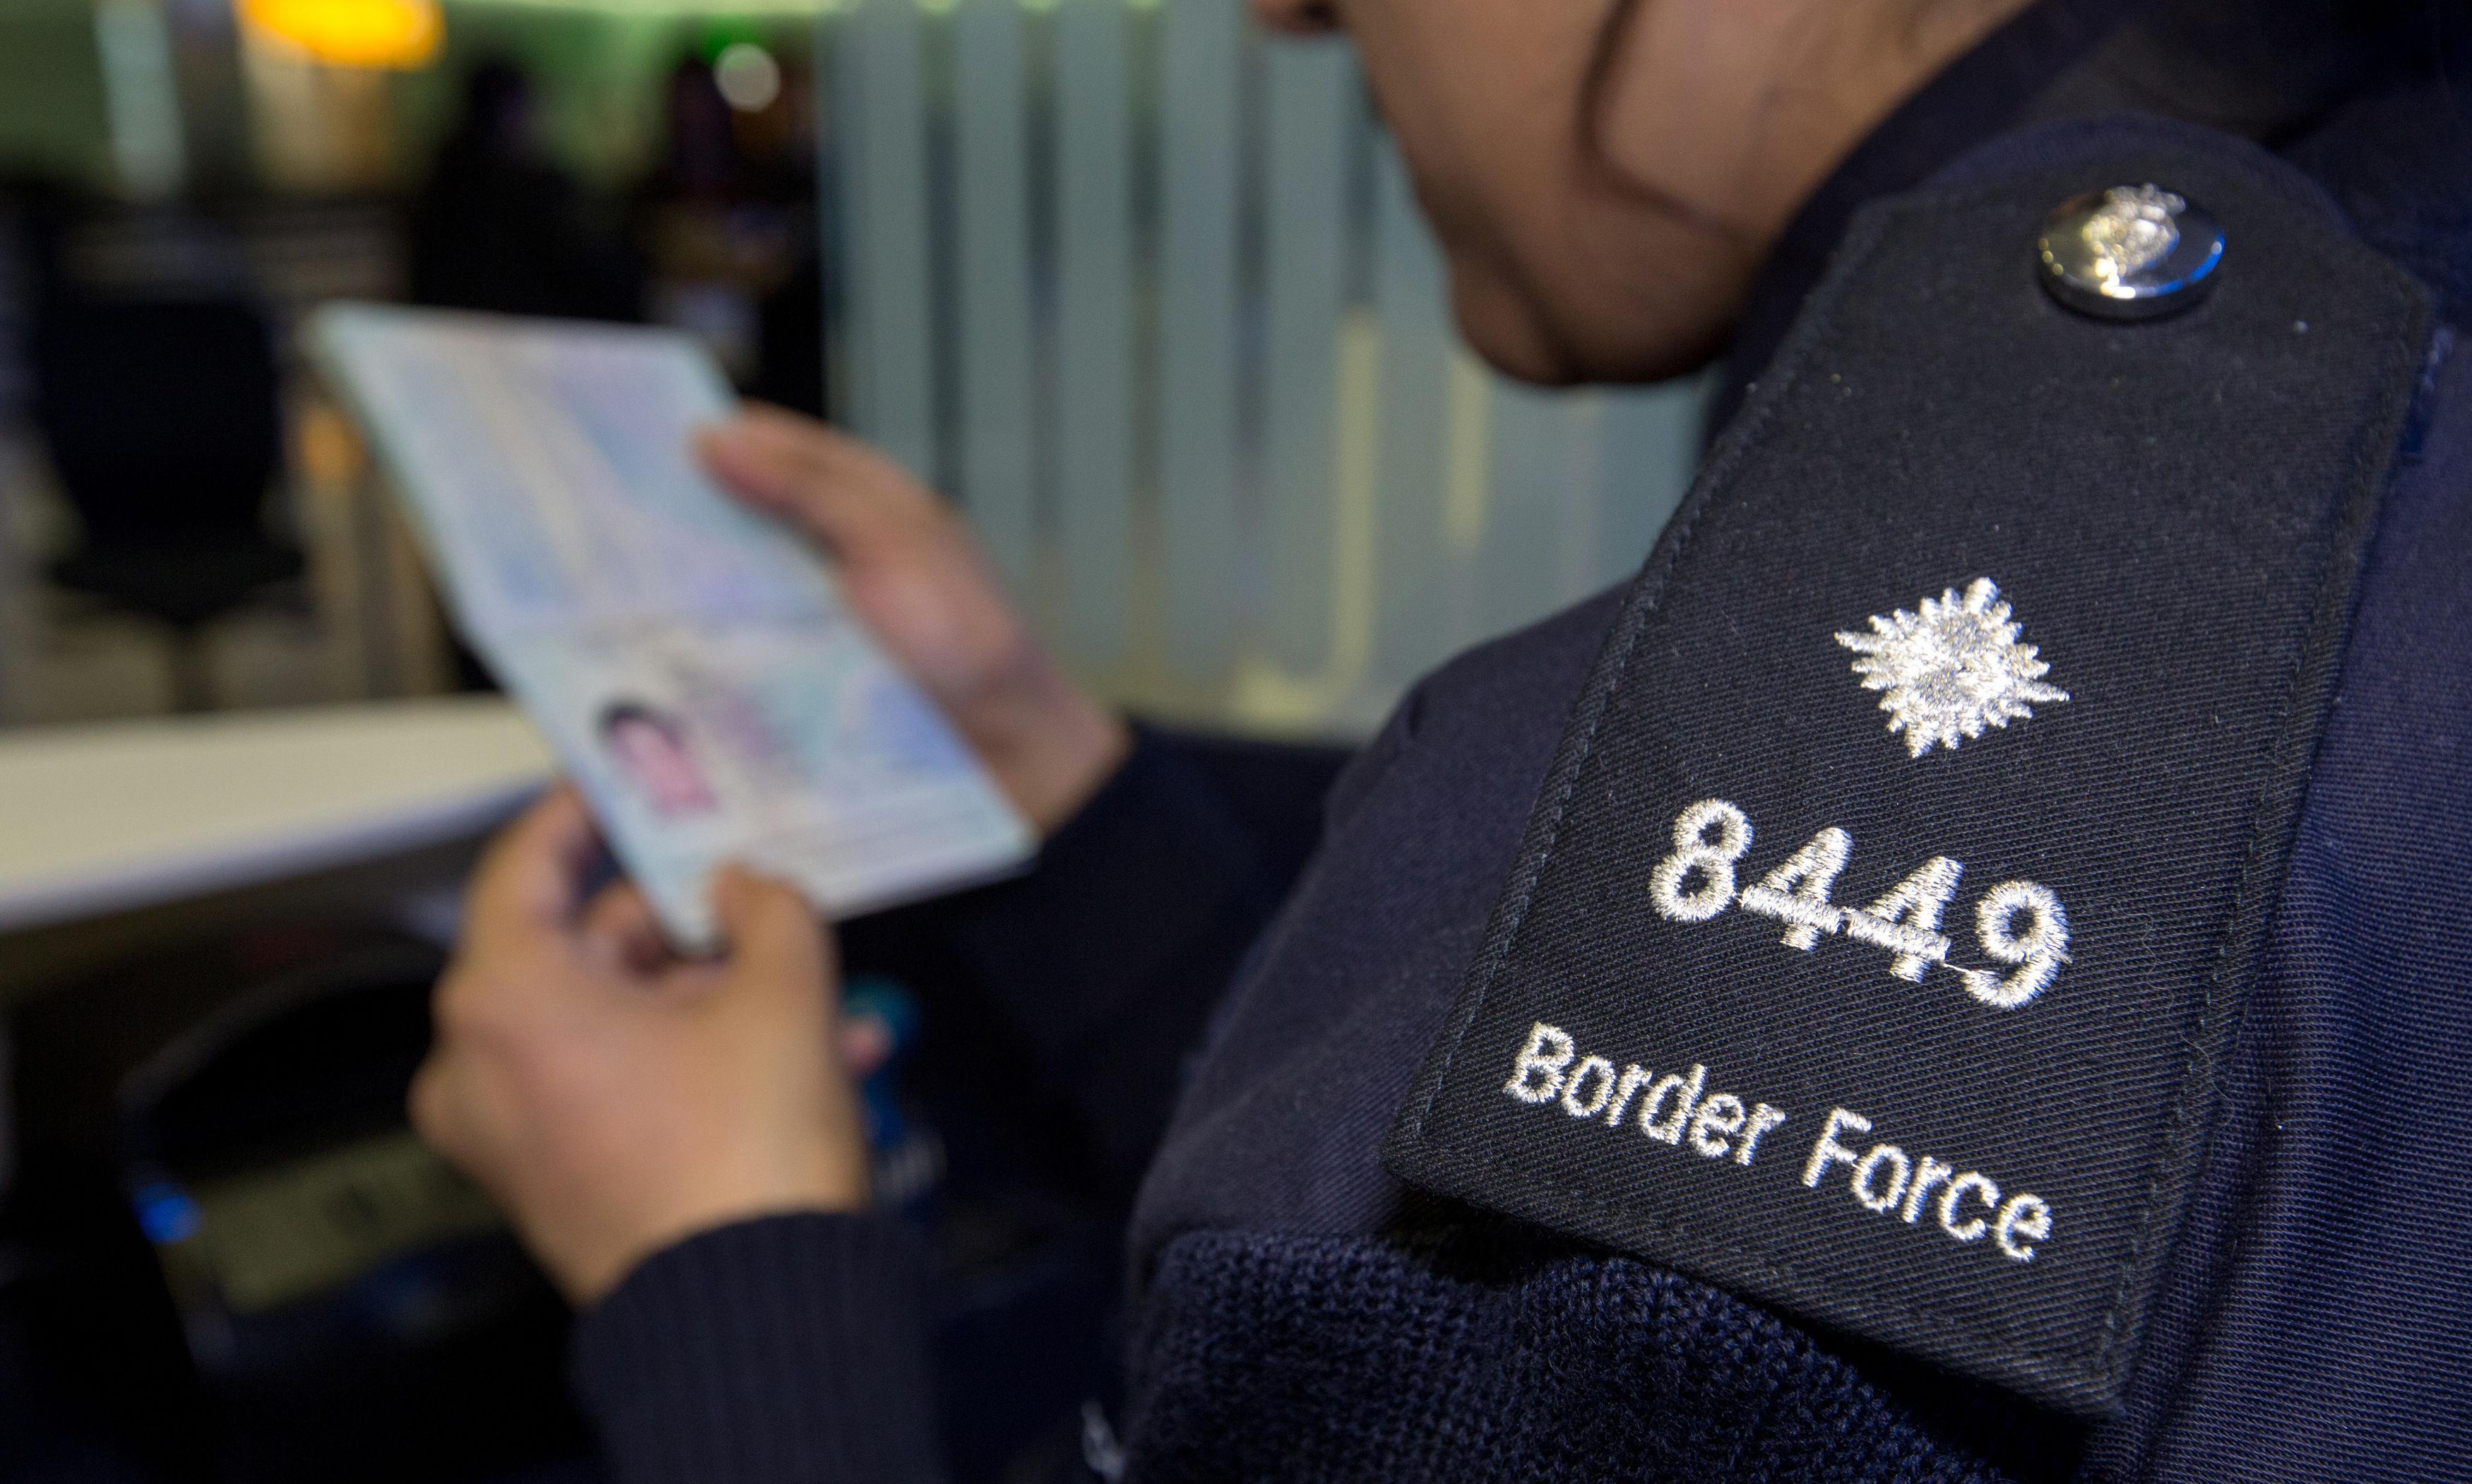 Home Office to assign Border Force tasks to agency workers